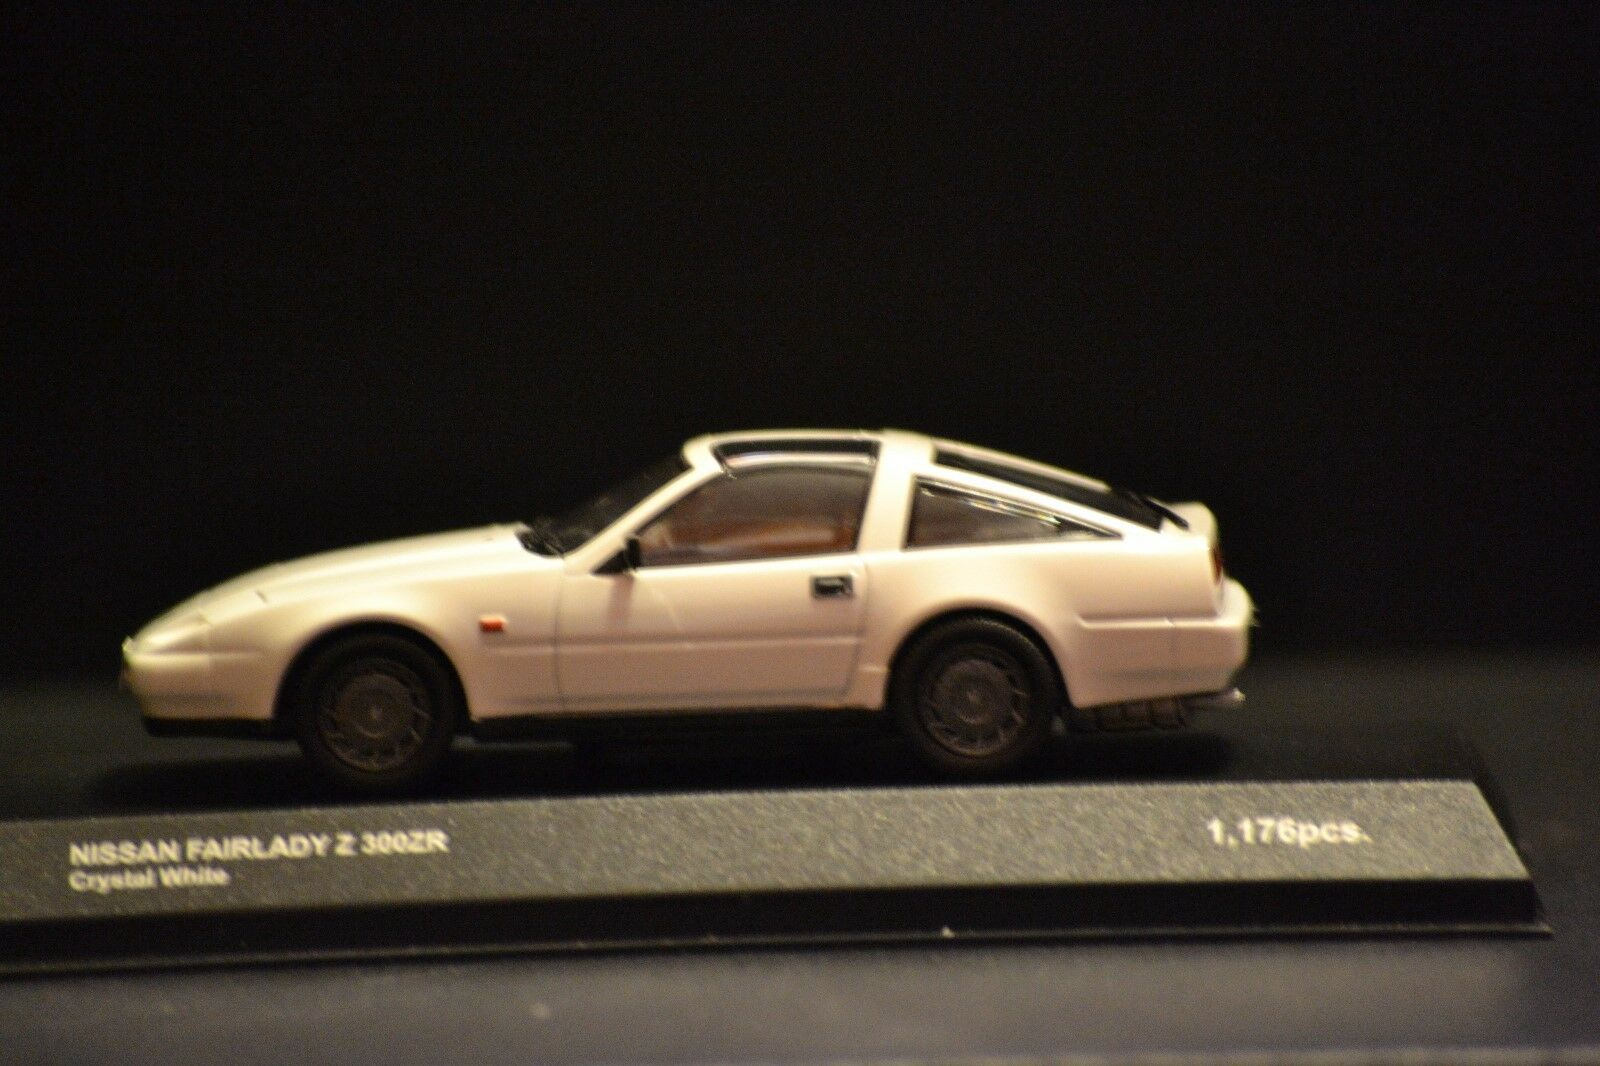 Nissan Fairlady Fairlady Fairlady Z 300ZR (HZ31) 1987 Kyosho Limited diecast vehicle in scale 1 43 62fb8d